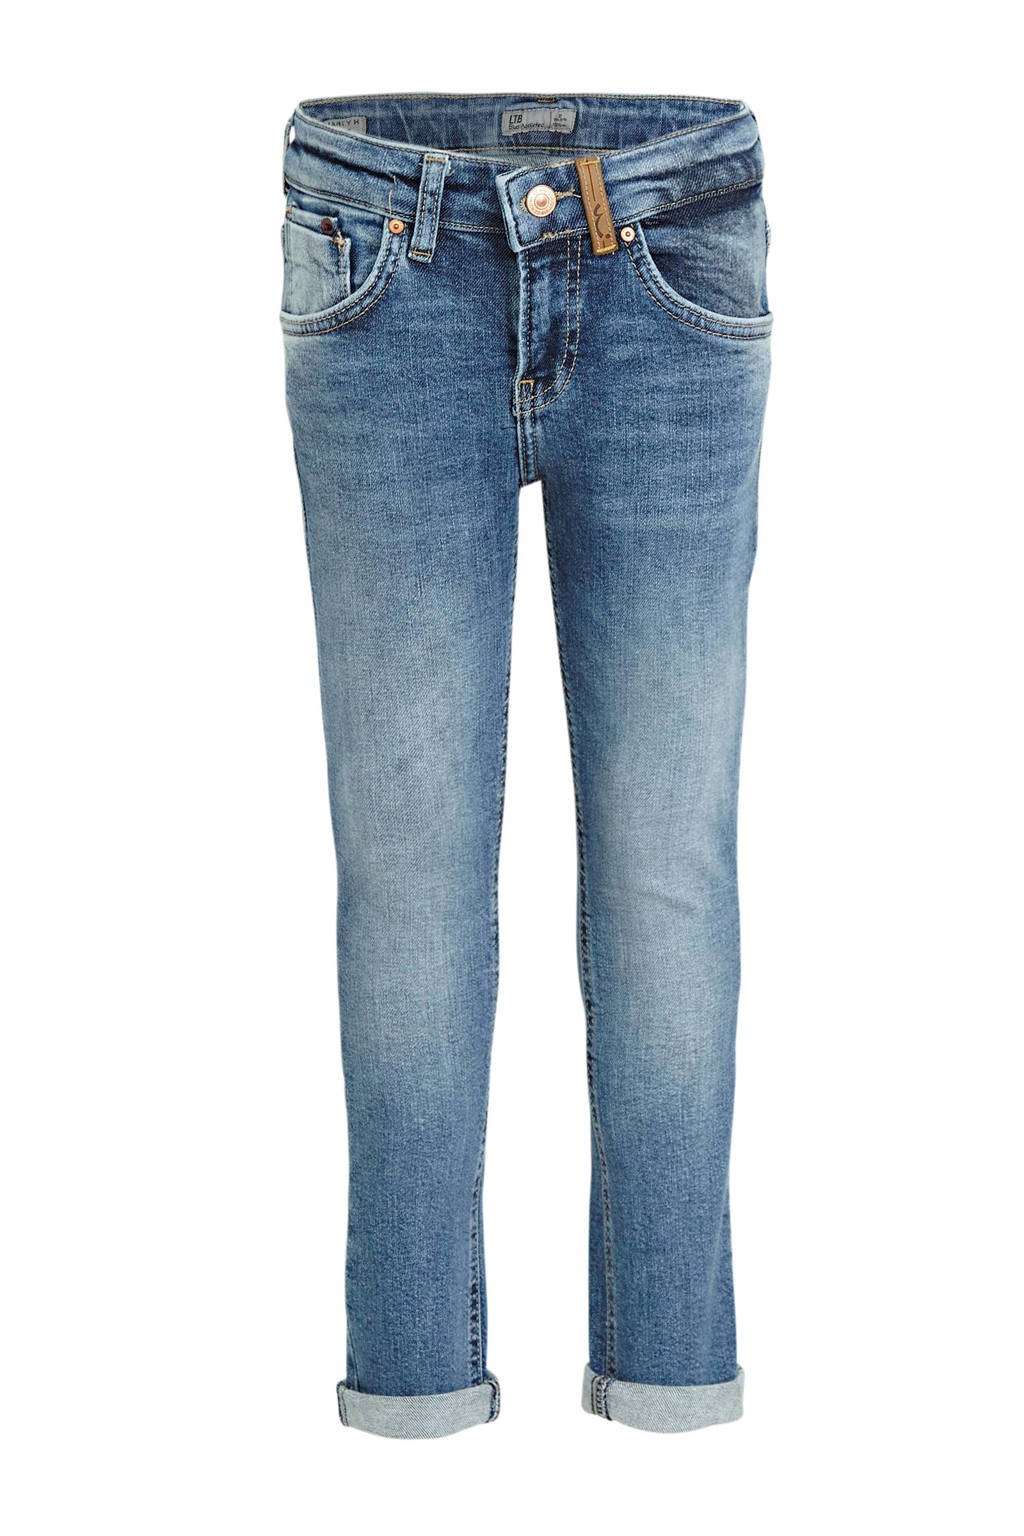 LTB slim fit jeans Smarty nema wash, Nema wash